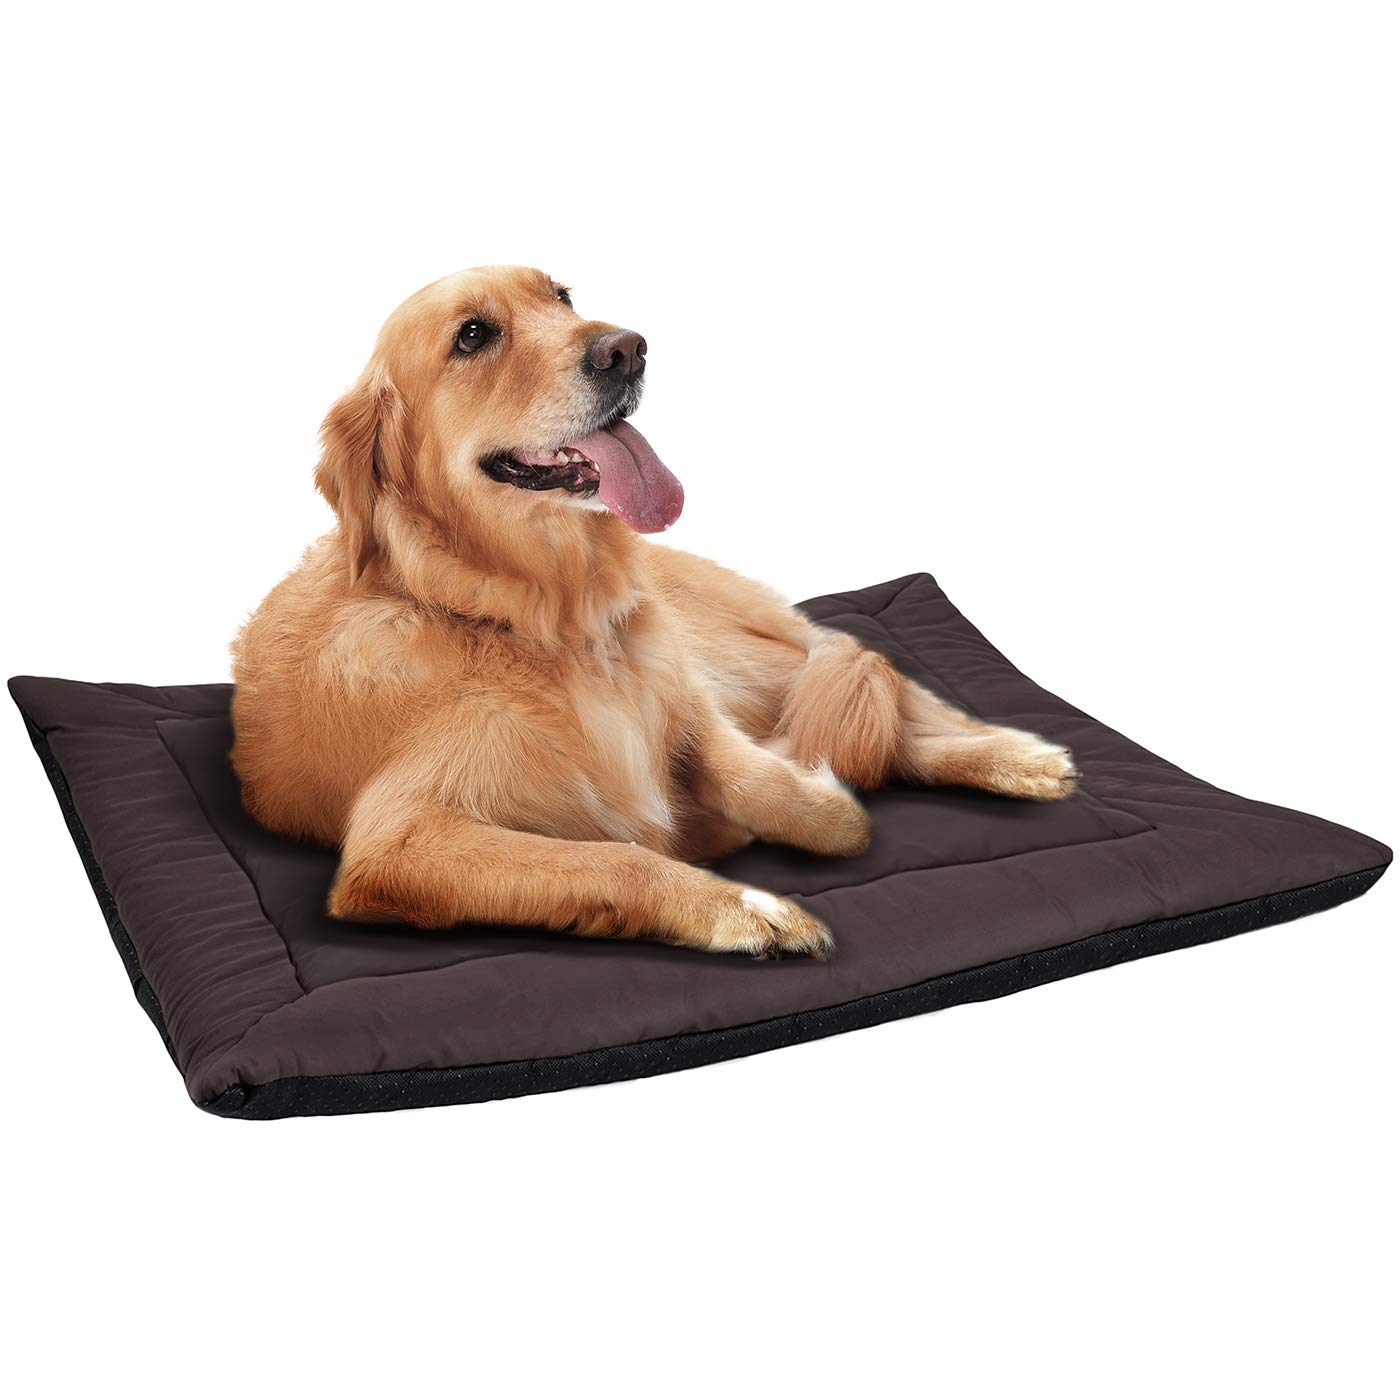 """Paws & Pals 37"""" x 25"""" Inches Self Warming Pet Bed Cushion Pad Dog Cat Cage Kennel Crate Soft Cozy Mat - Brown"""